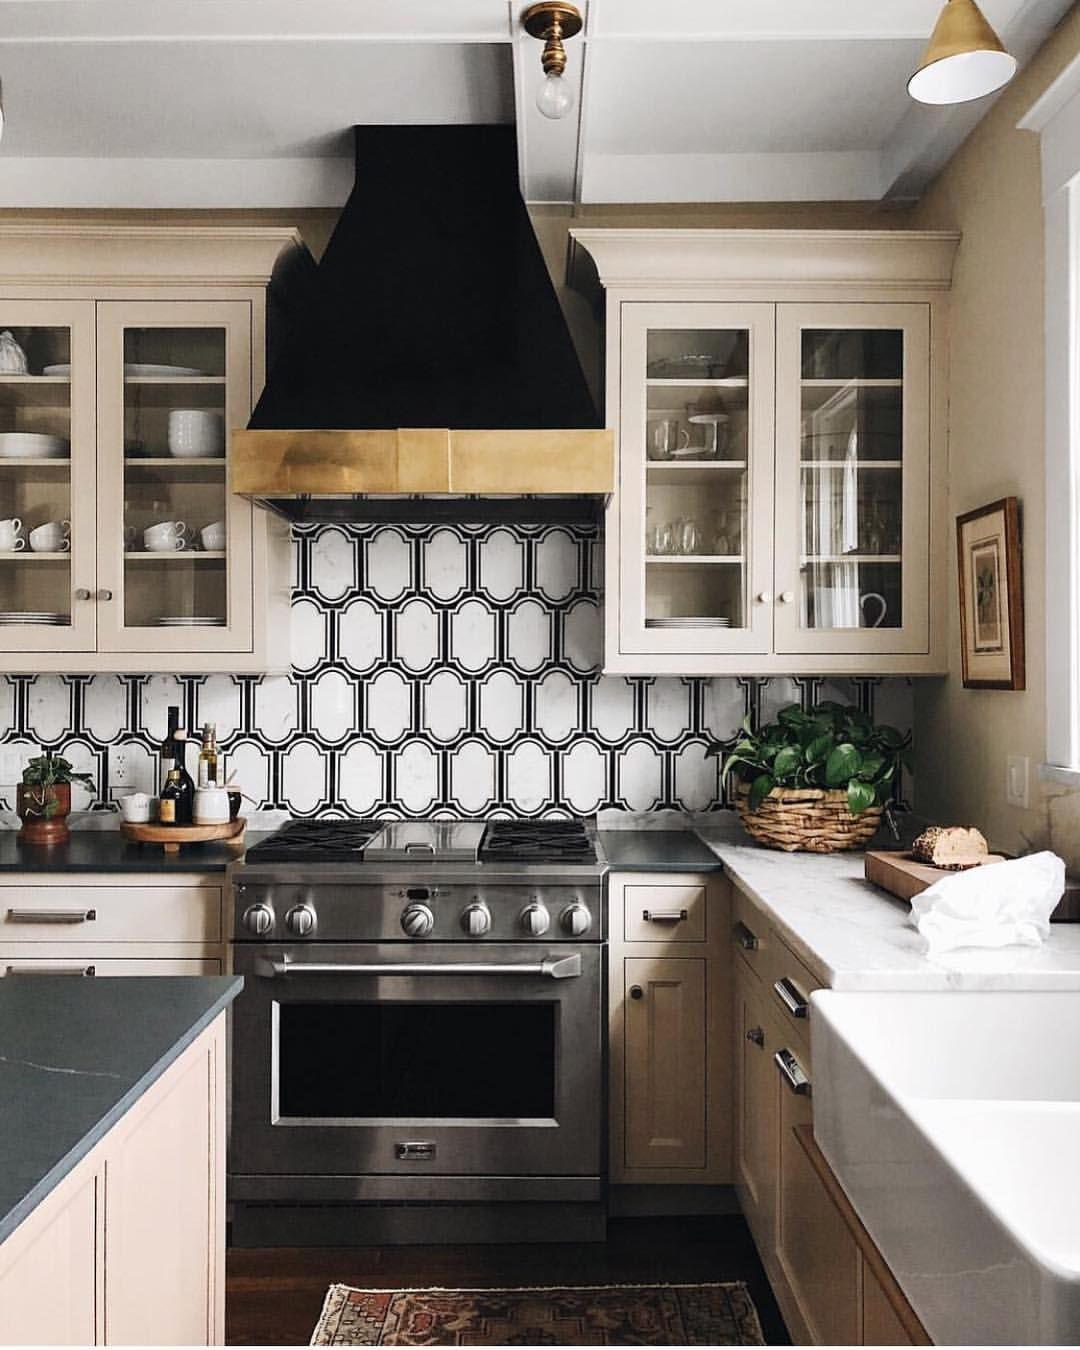 10 Kitchen And Home Decor Items Every 20 Something Needs: I Think I Just Died And Went To Heaven. This Kitchen